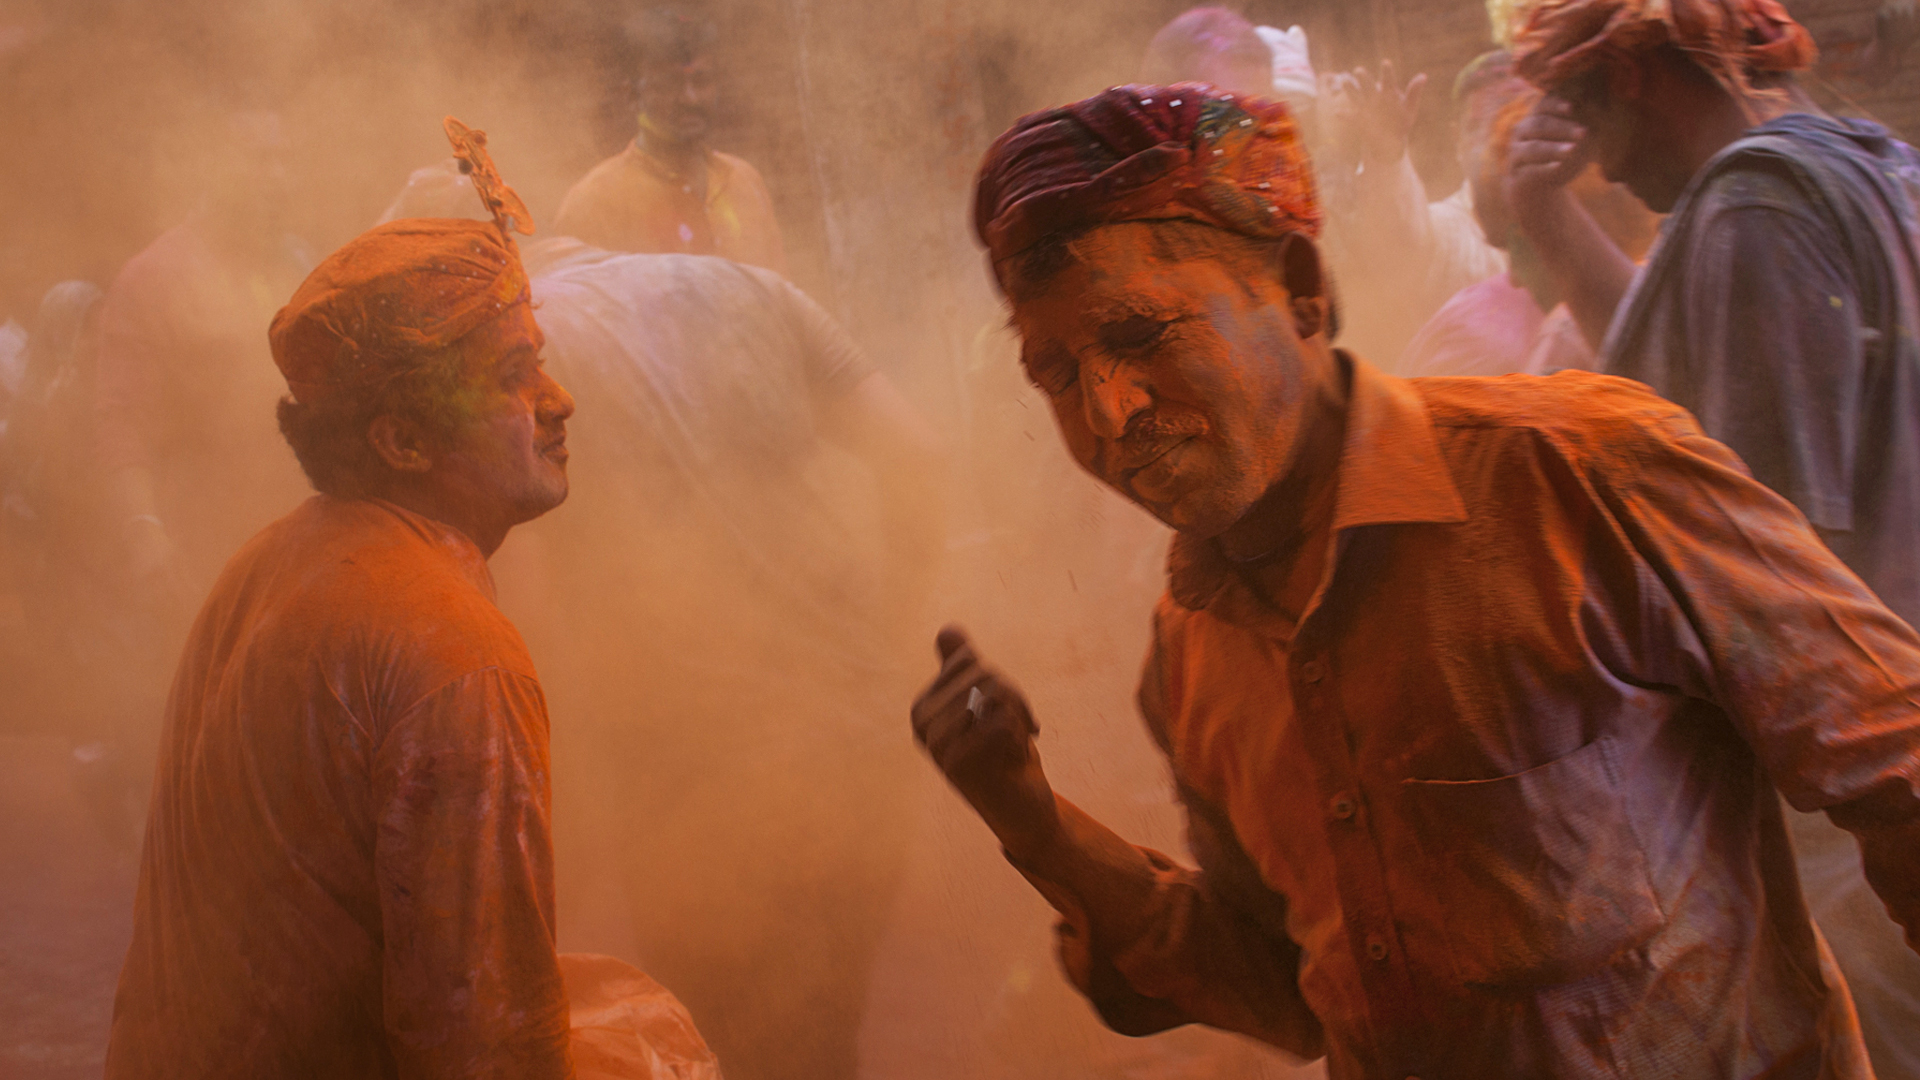 Lathmar Holi: Zooming In On The Angles Of Caste And Misogyny In India's Twin Villages